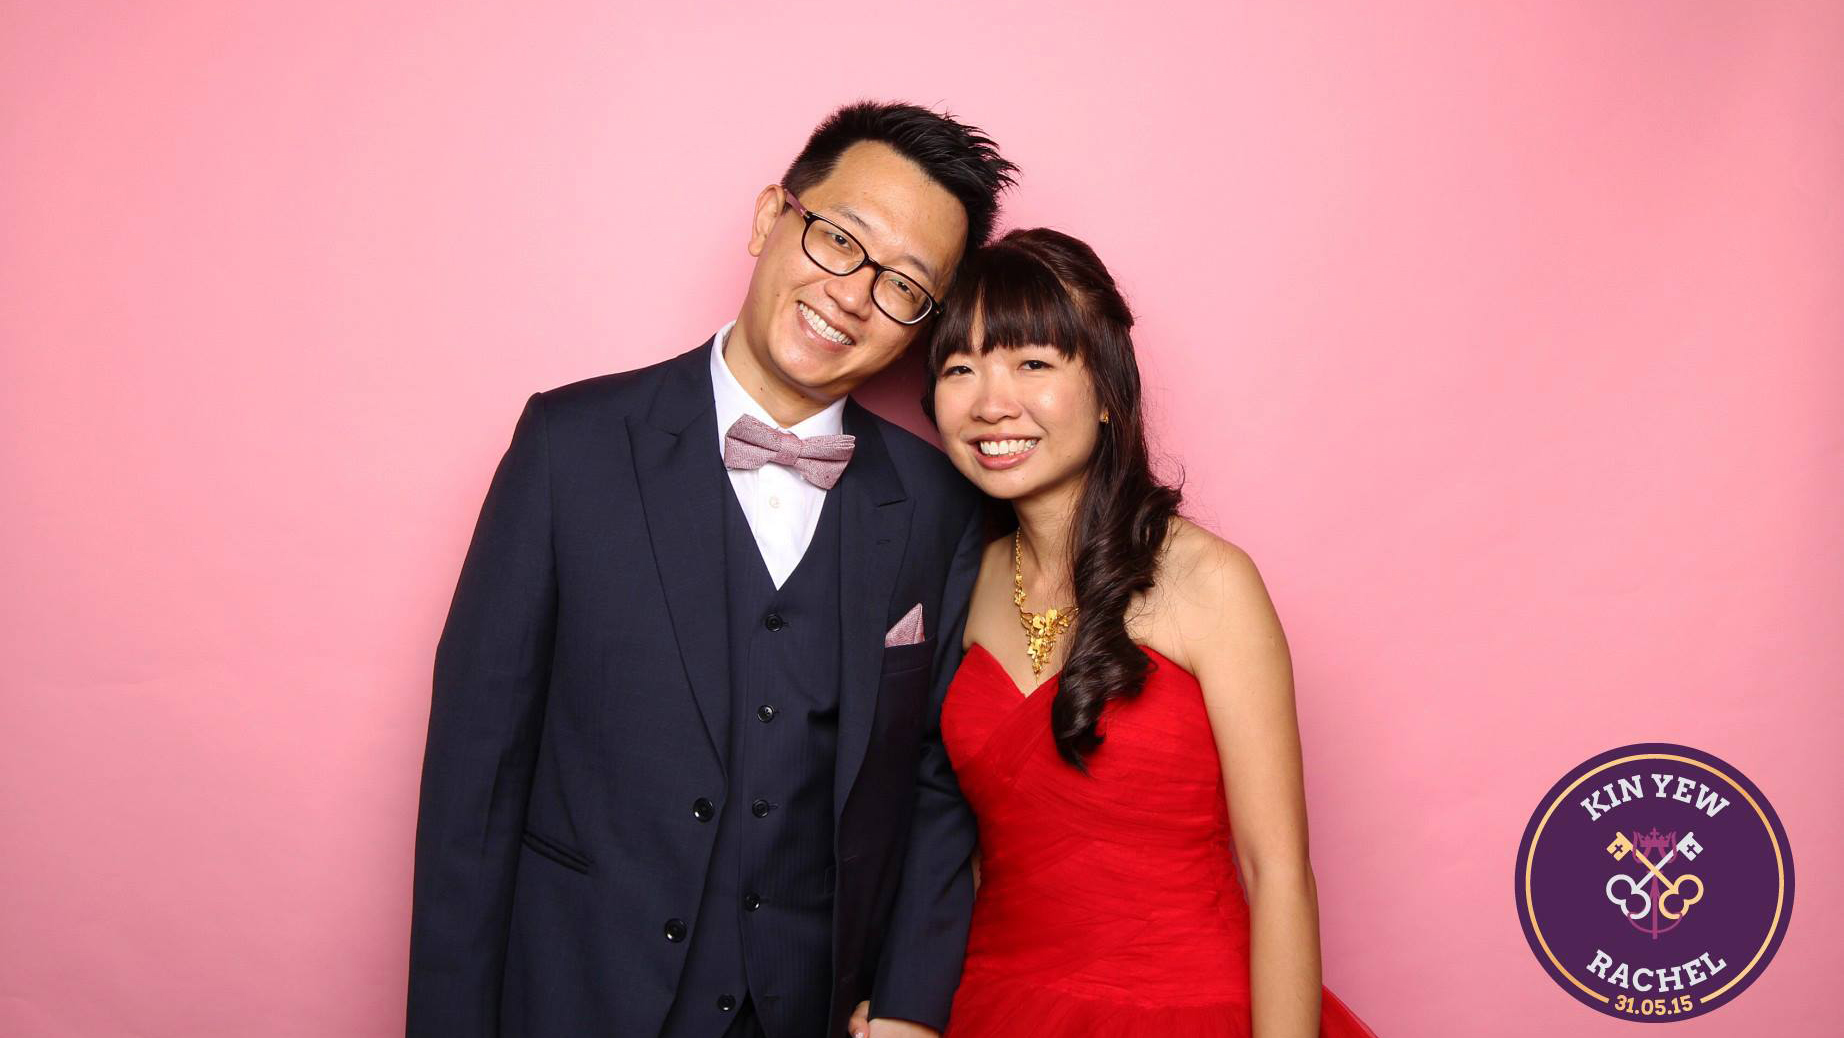 Fourstops • Singapore Photobooth • Kin Yew & Rachel Wedding 2015 Cover